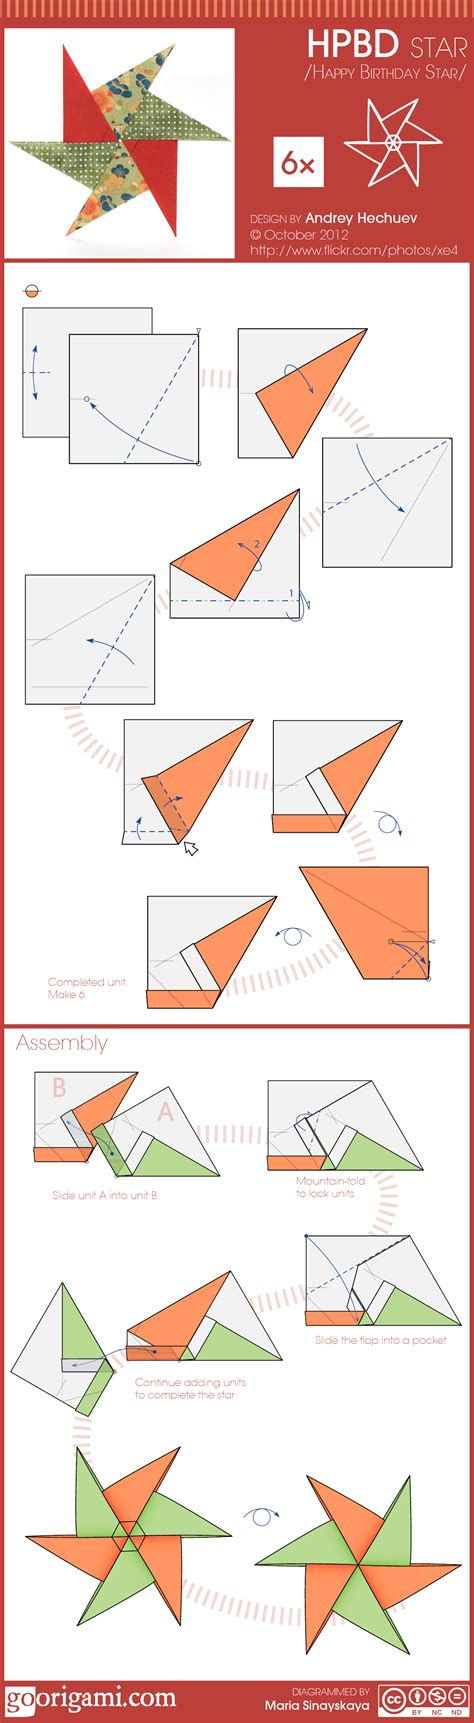 Learn How To Do Origami - learn how to fold 6 pointed hpbd origami design by